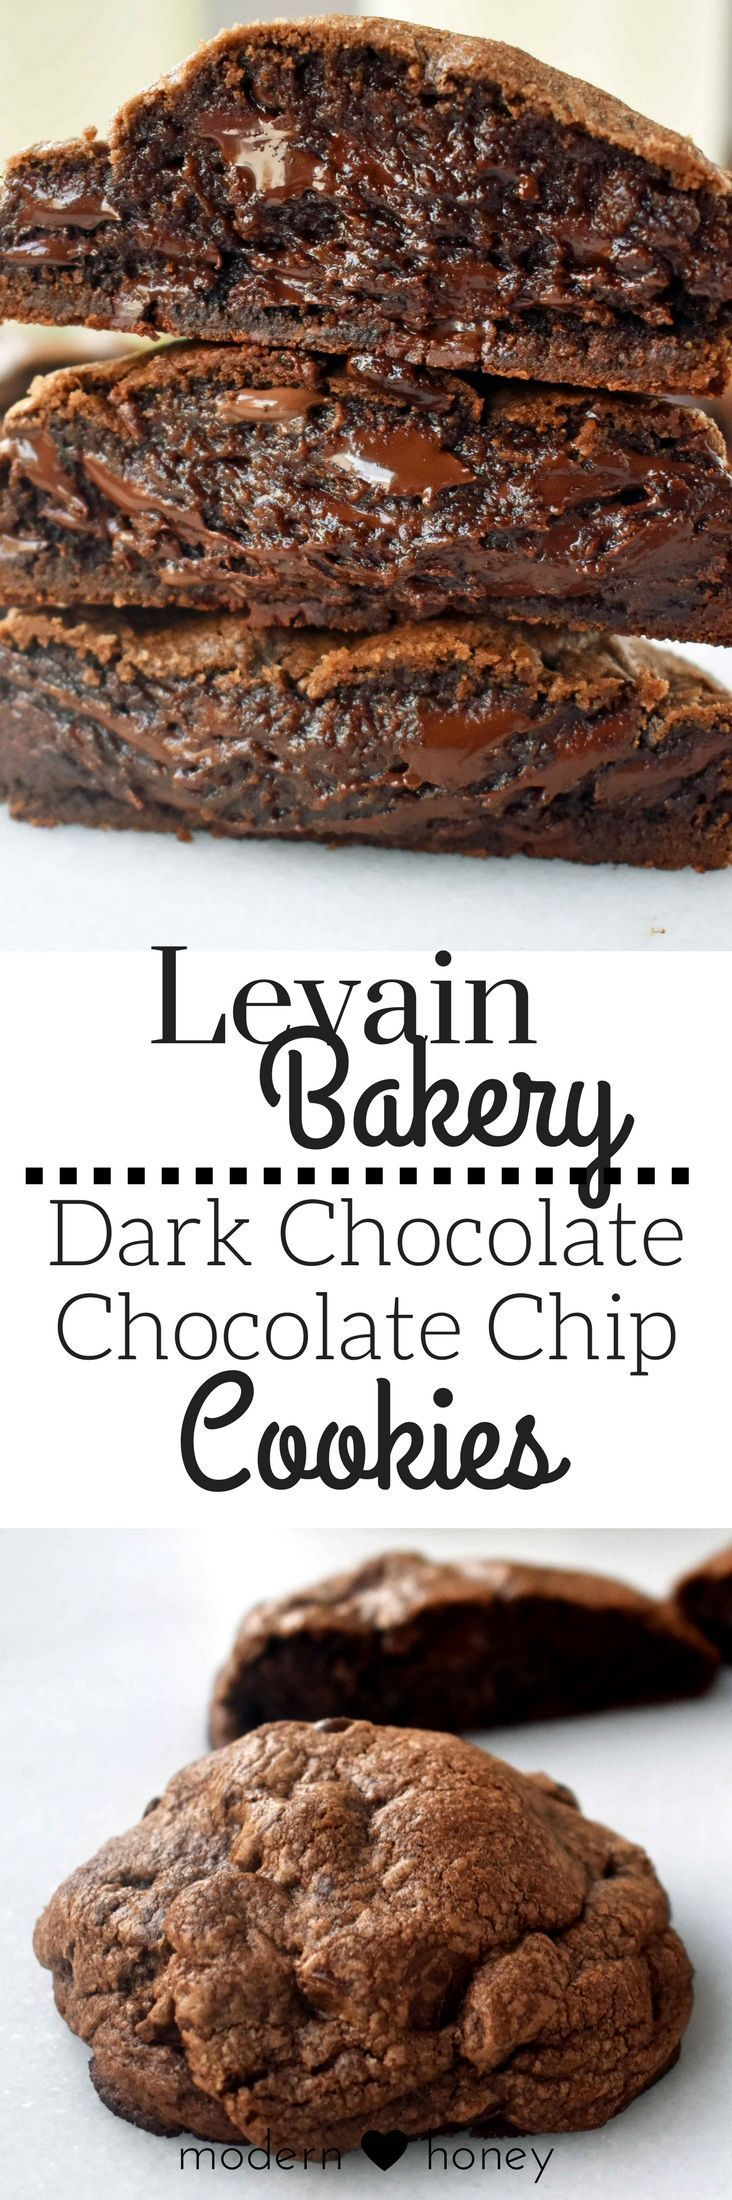 Best 25+ Star chocolate ideas that you will like on Pinterest ...